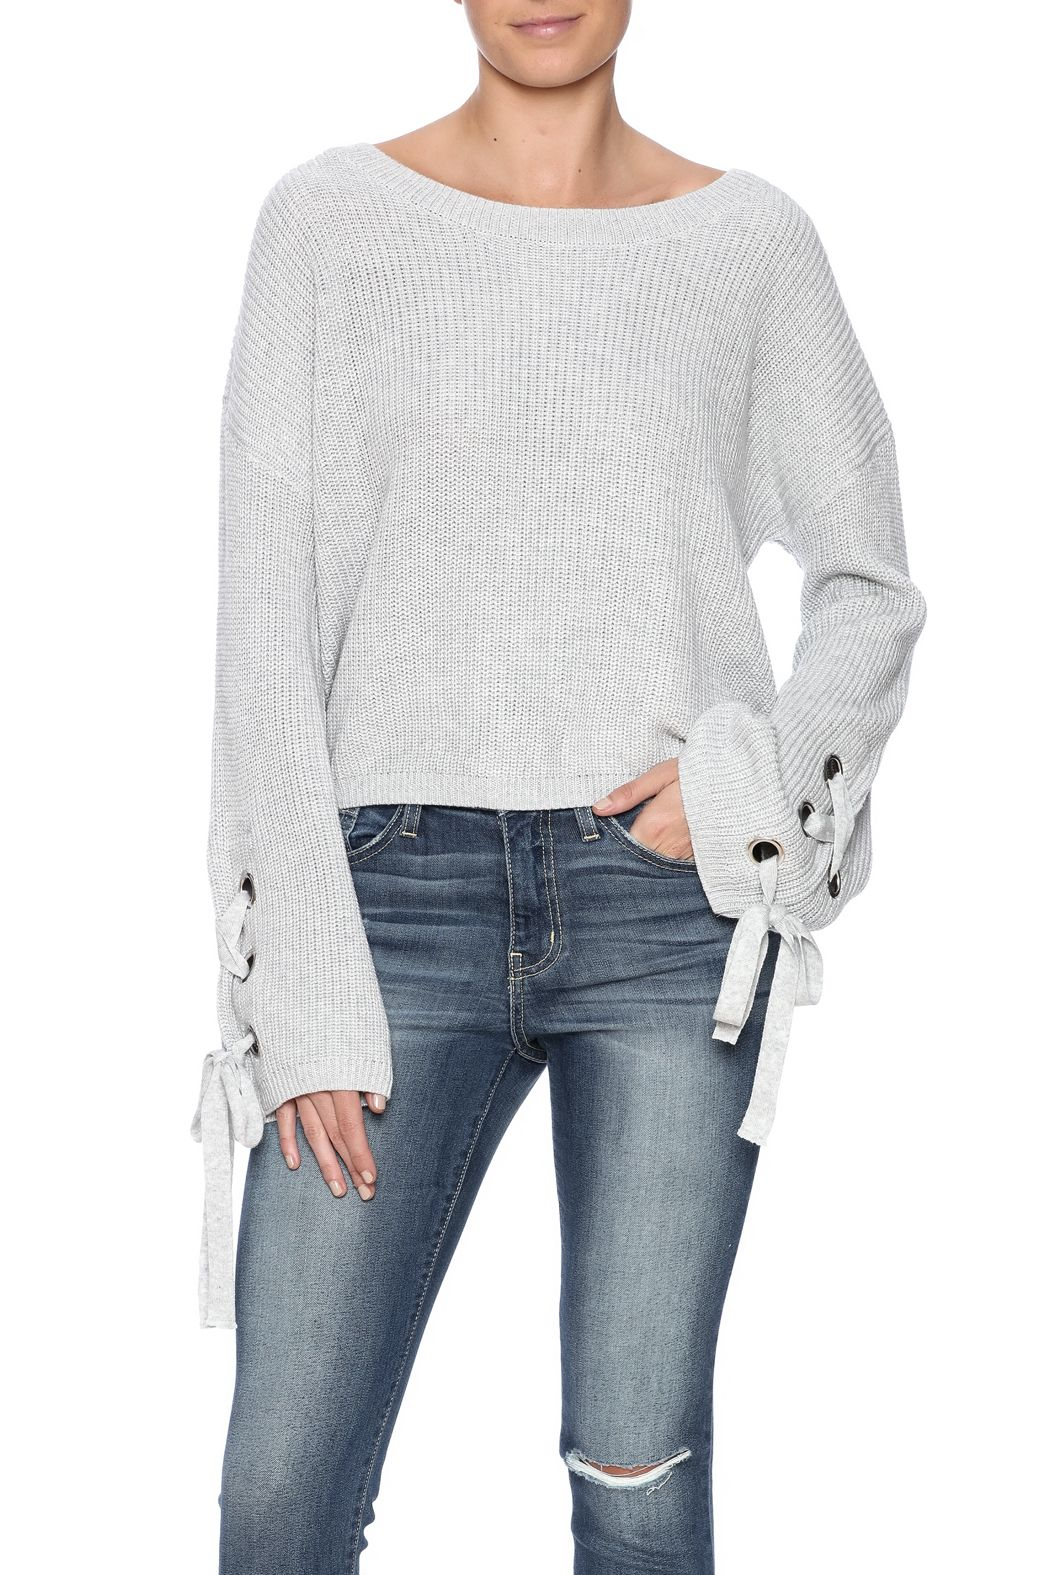 Light grey sweater with long sleeves boat neckline and grommet lace up  detailing. Tie Sleeve Sweater by Mono B. Clothing - Sweaters - Crew   Scoop  Neck New ... e88d42737